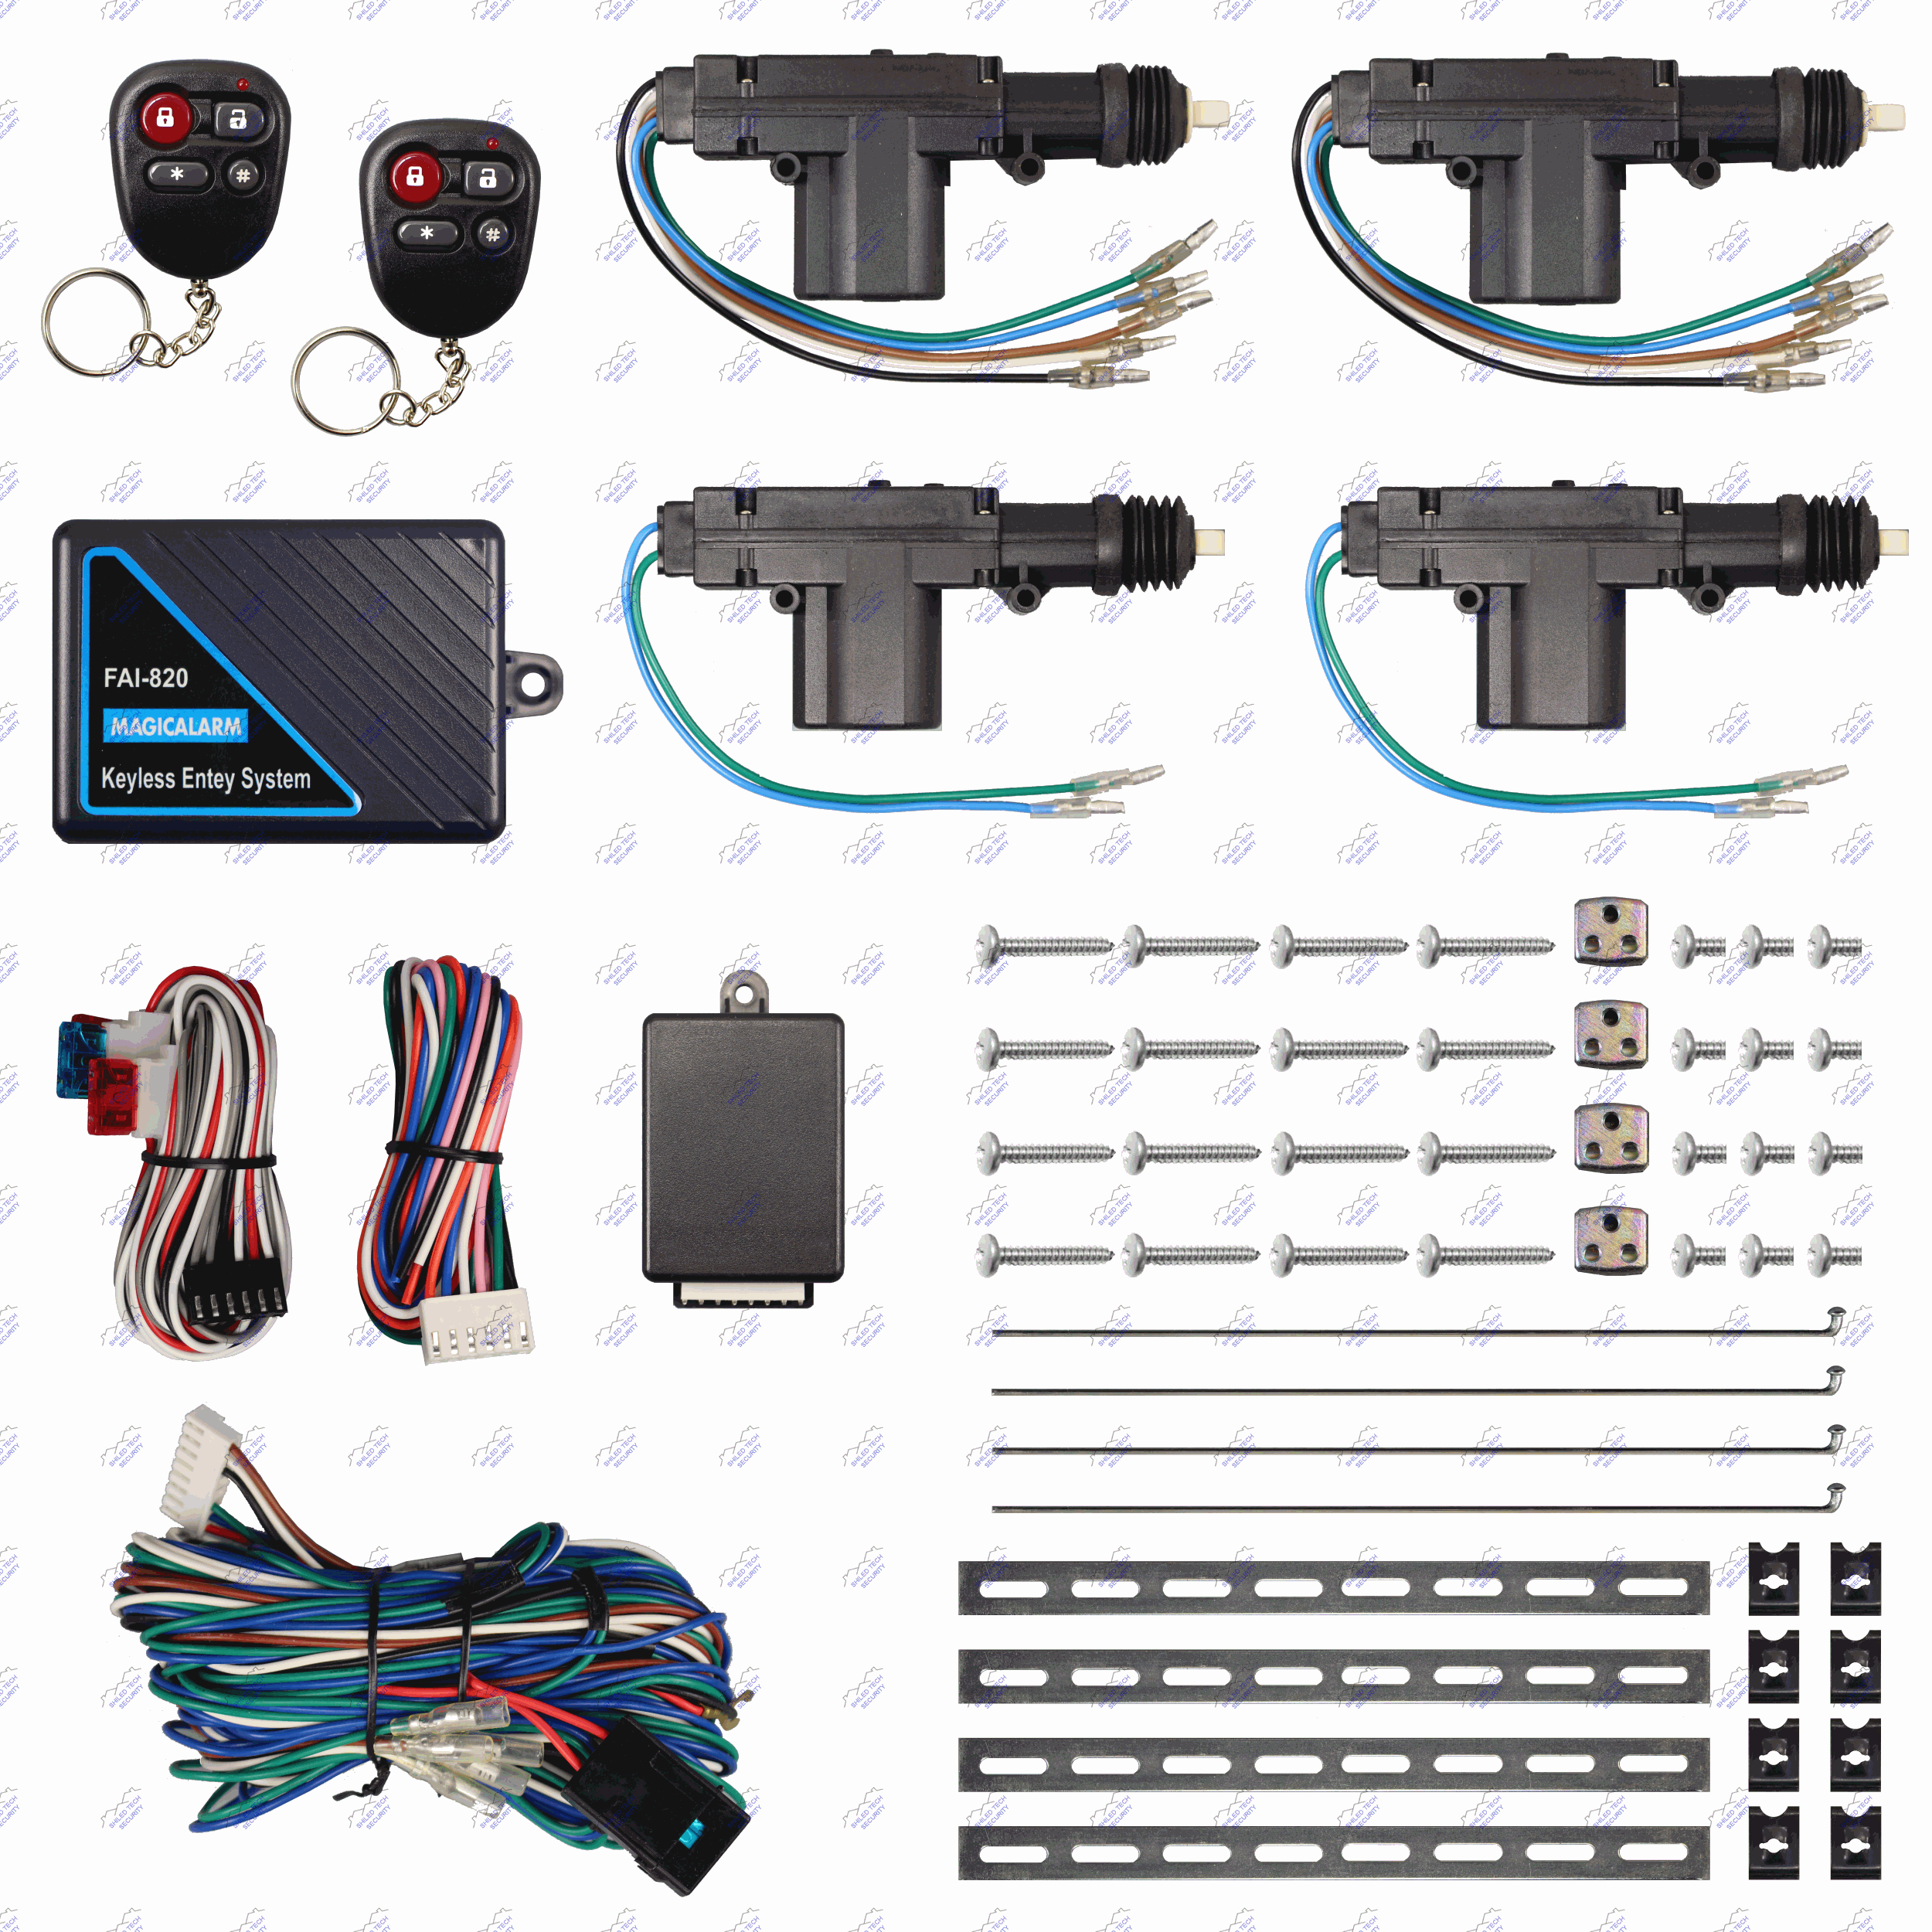 Remote Keyless Entry System   4 Door Power Lock Heavy Duty